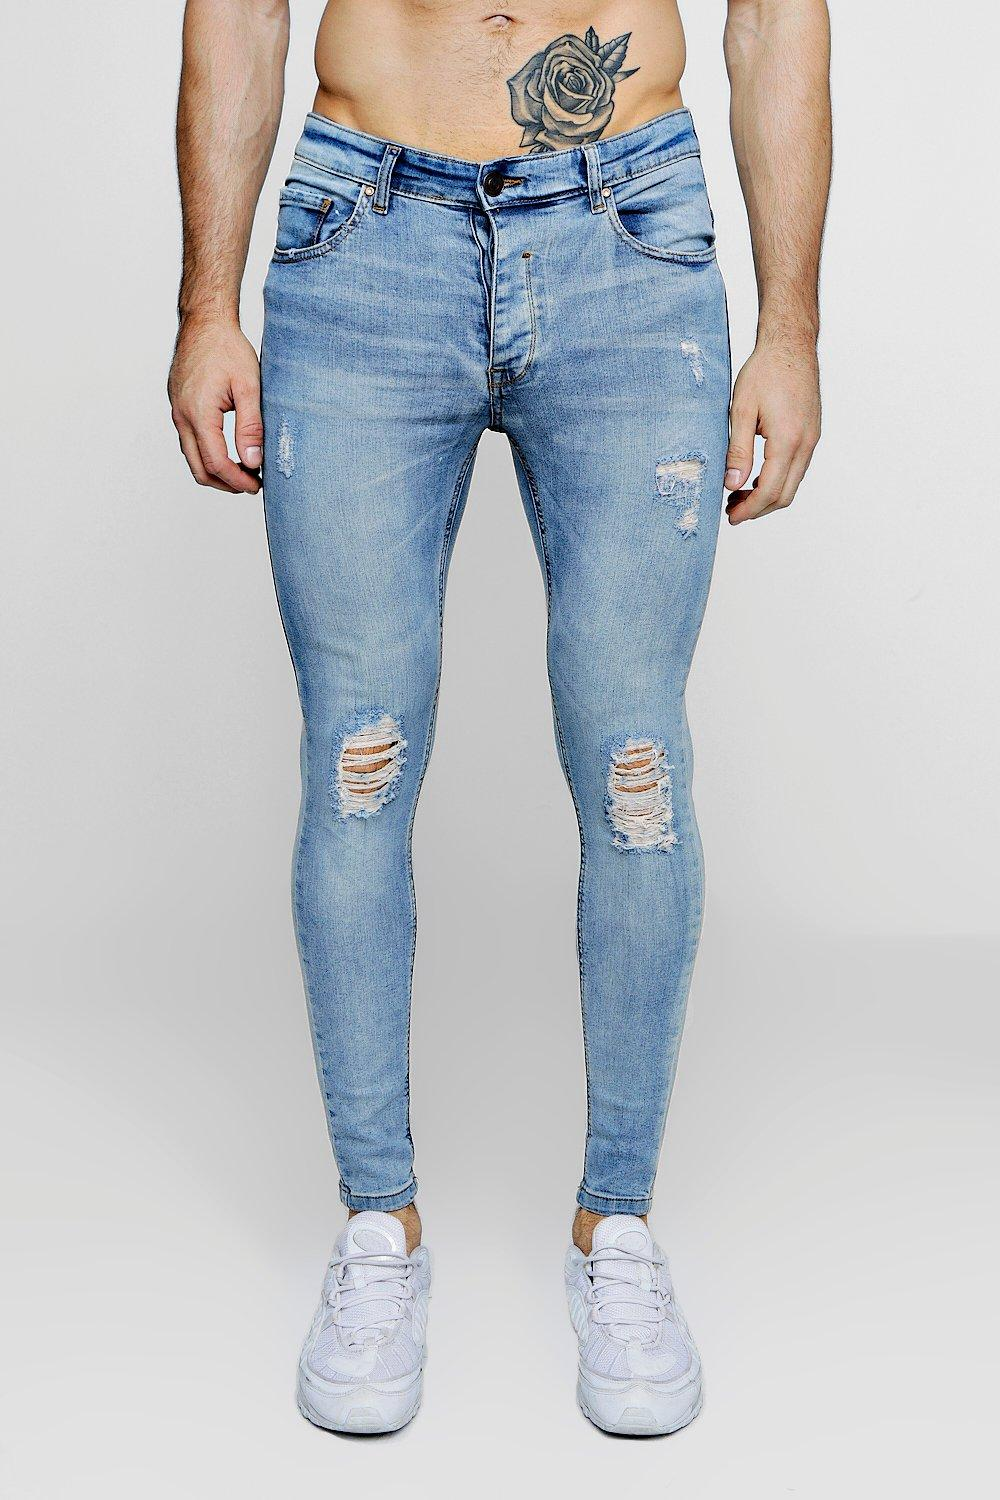 Skinny Rips Super washed knee blue With Fit Jeans 6axxwPHq